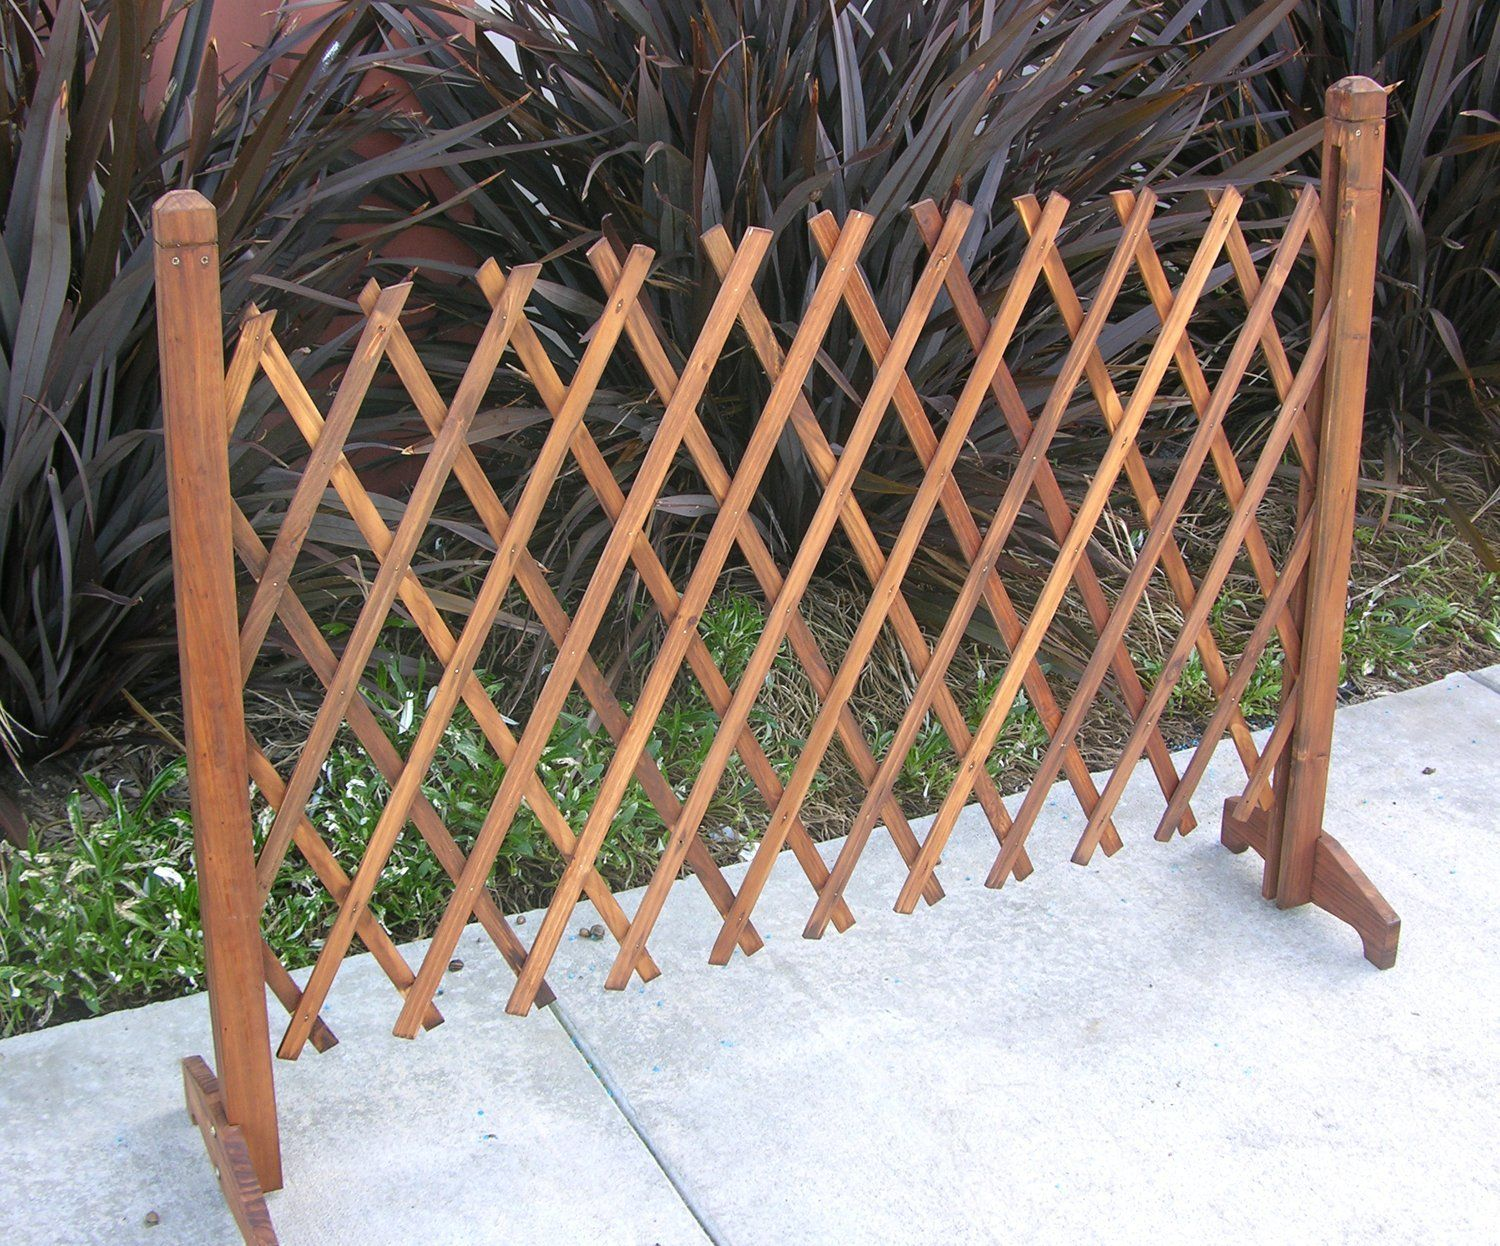 Buy Expanding Portable Fence Wooden Screen Dog Gate Pet Safety Kid Patio  Garden Lawn At Online Store